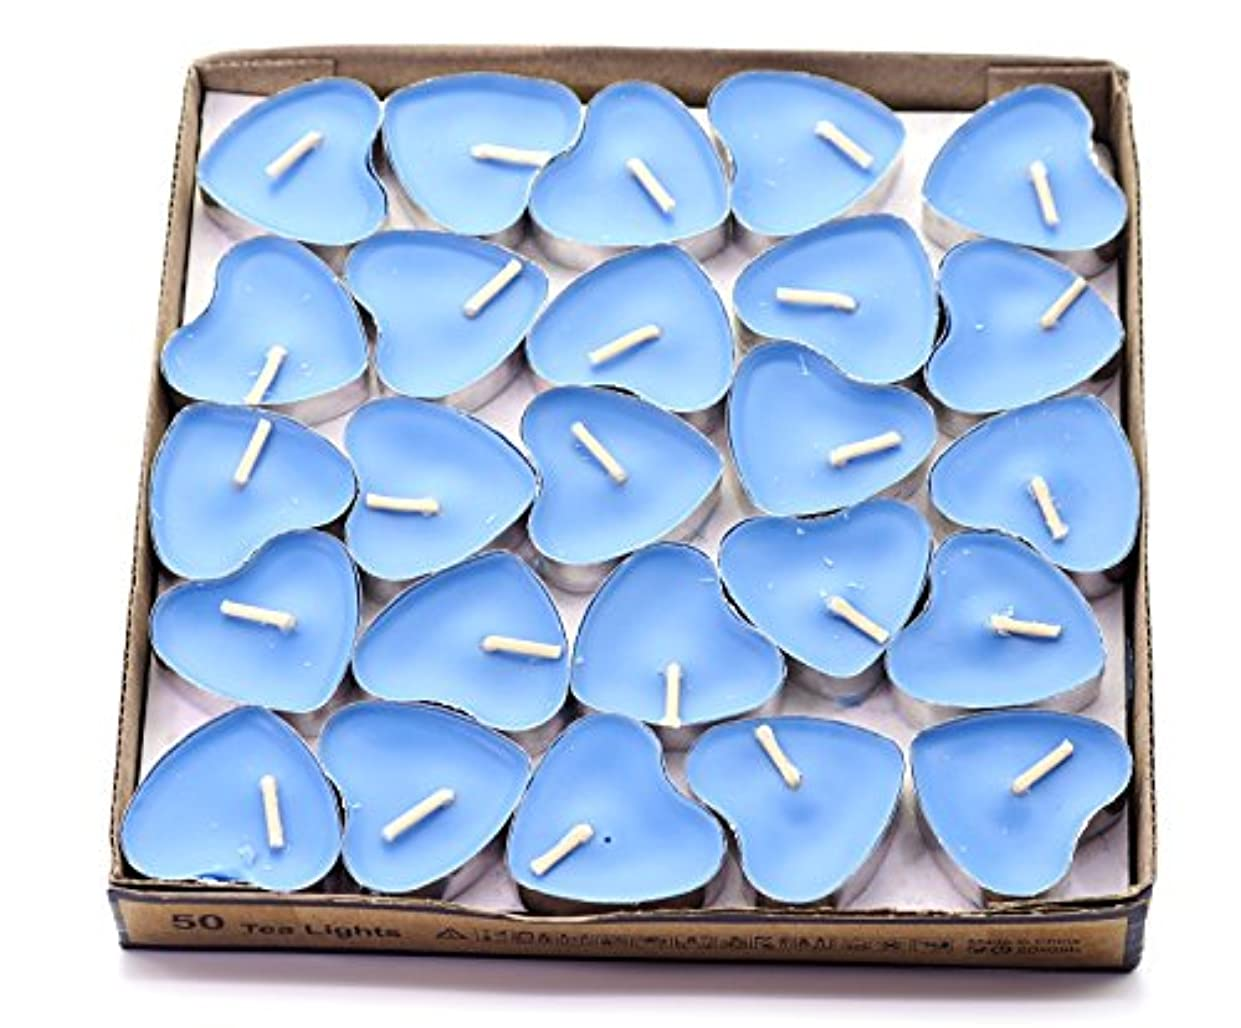 分類野ウサギ平日(Blue(ocean)) - Creationtop Scented Candles Tea Lights Mini Hearts Home Decor Aroma Candles Set of 50 pcs mini...